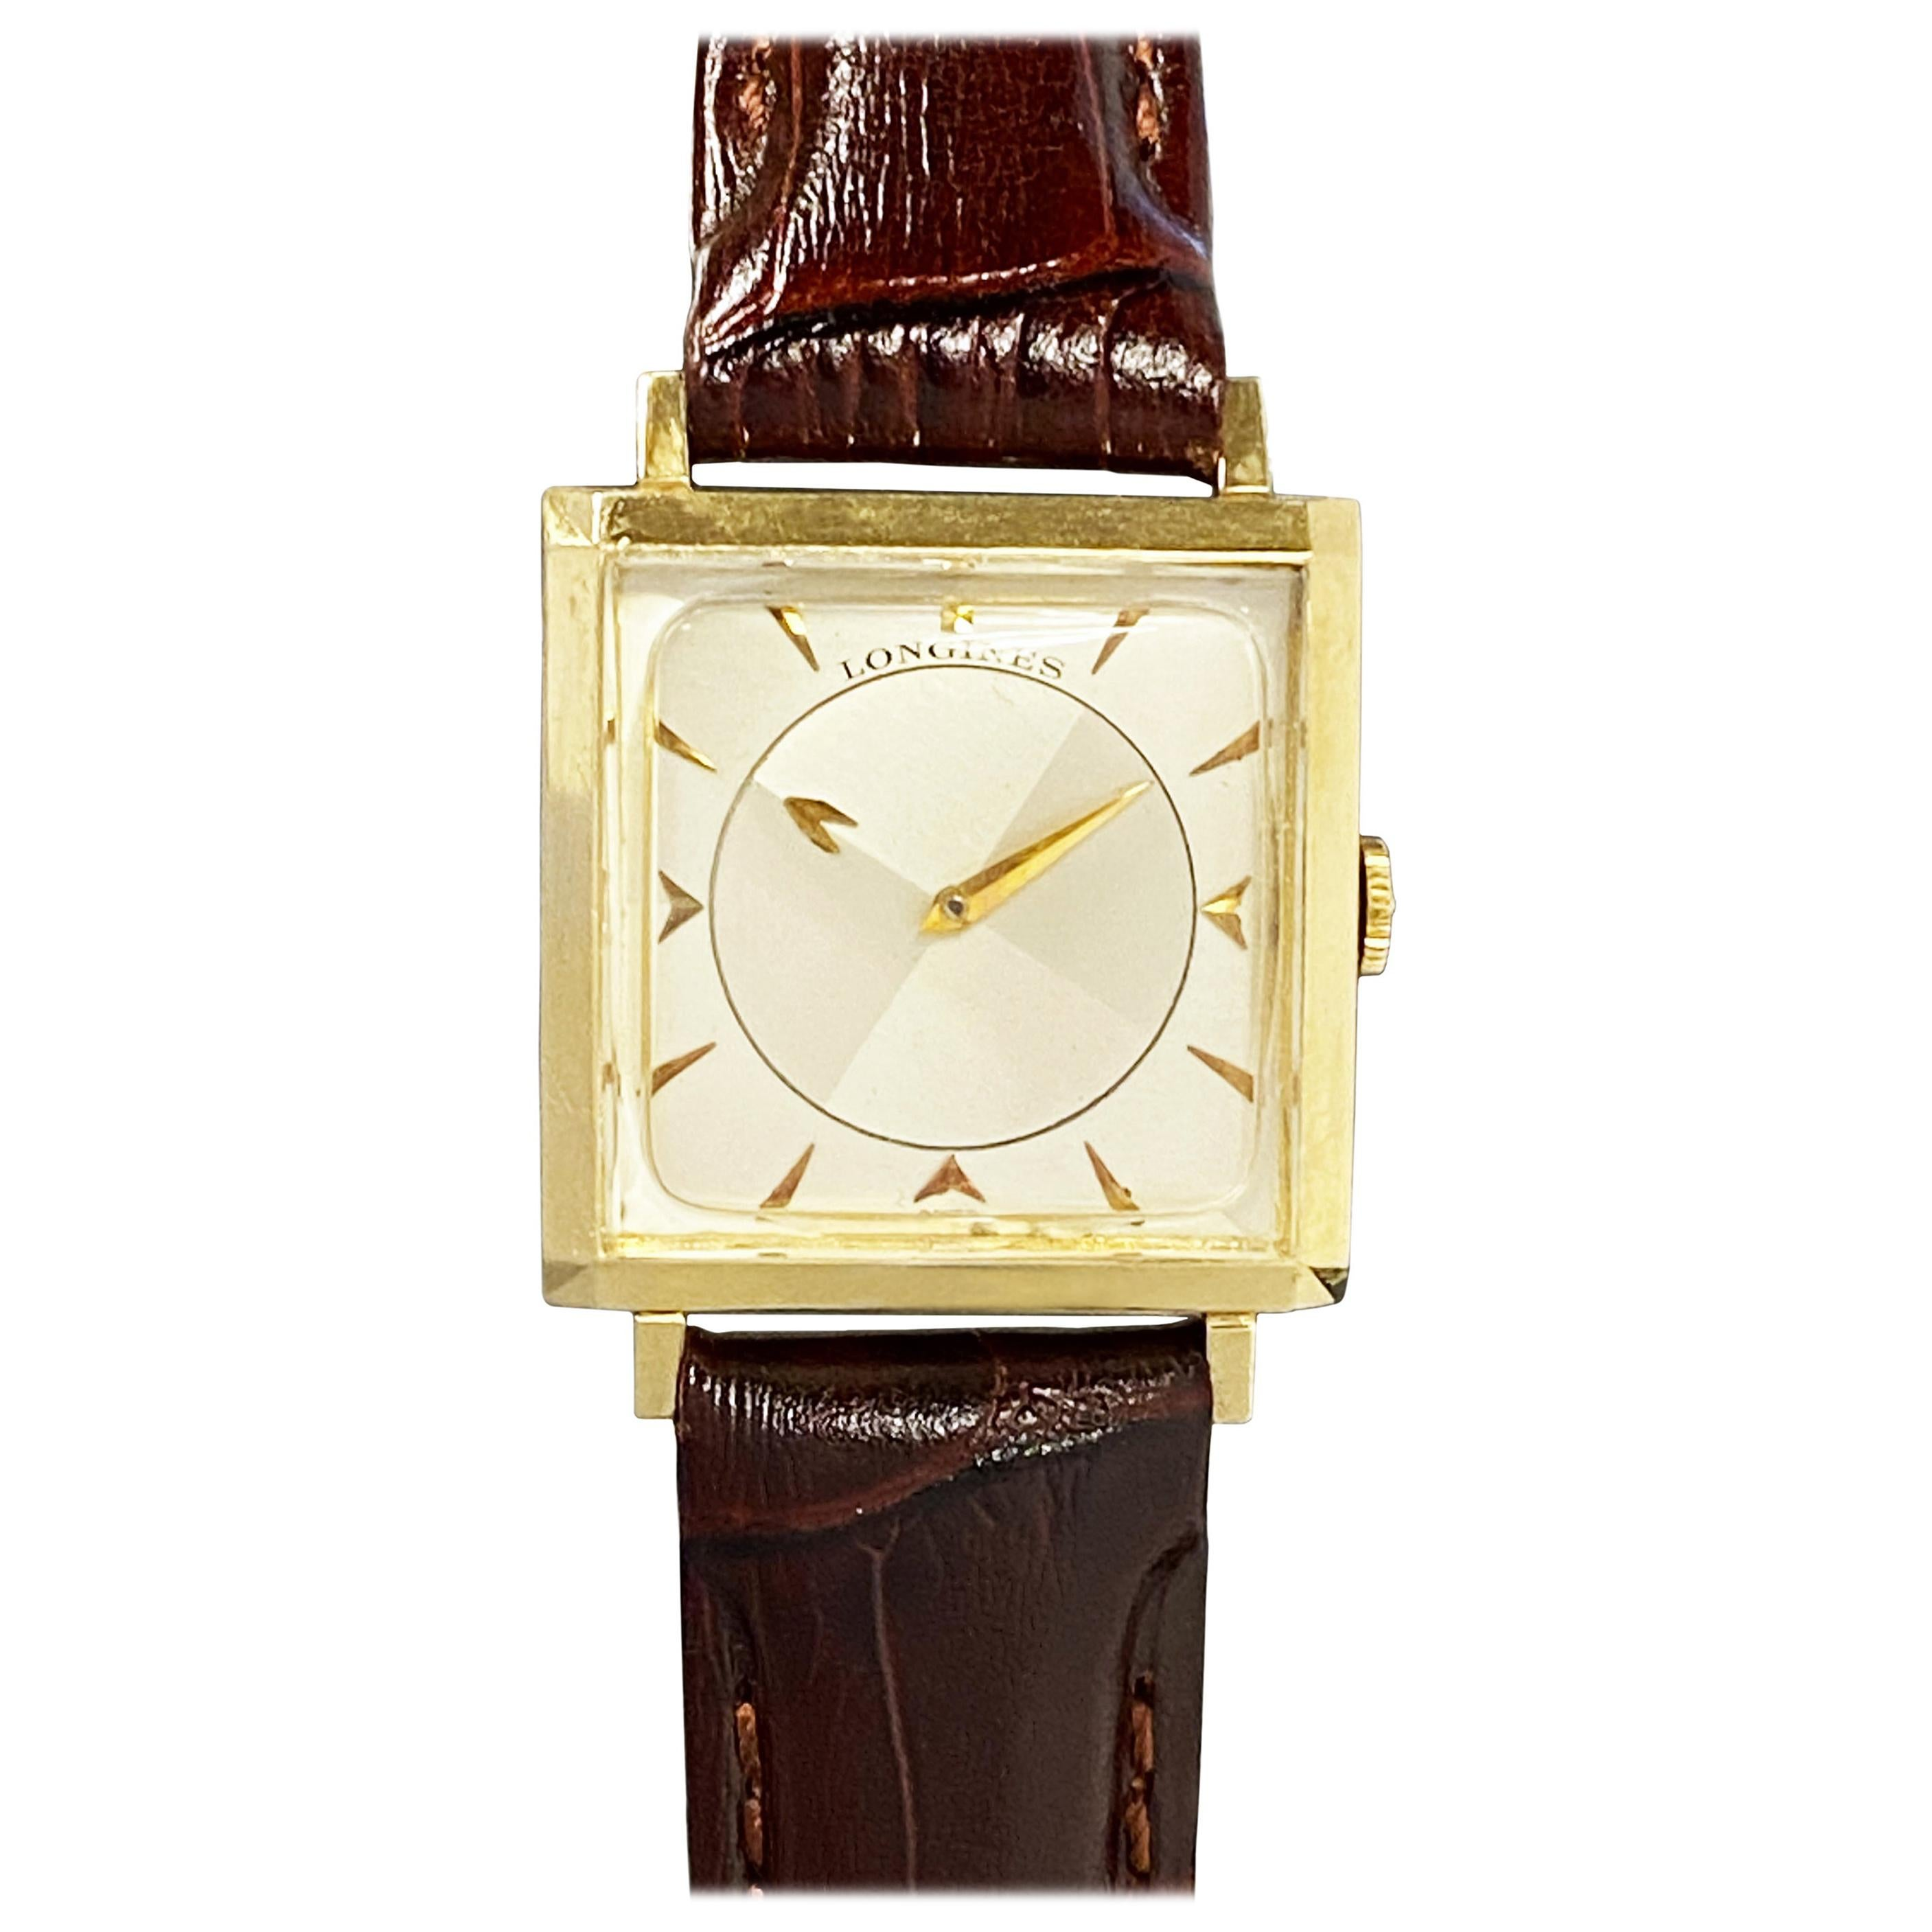 Longines 1950 Mystery Dial Yellow Gold Manual Wind Wrist Watch